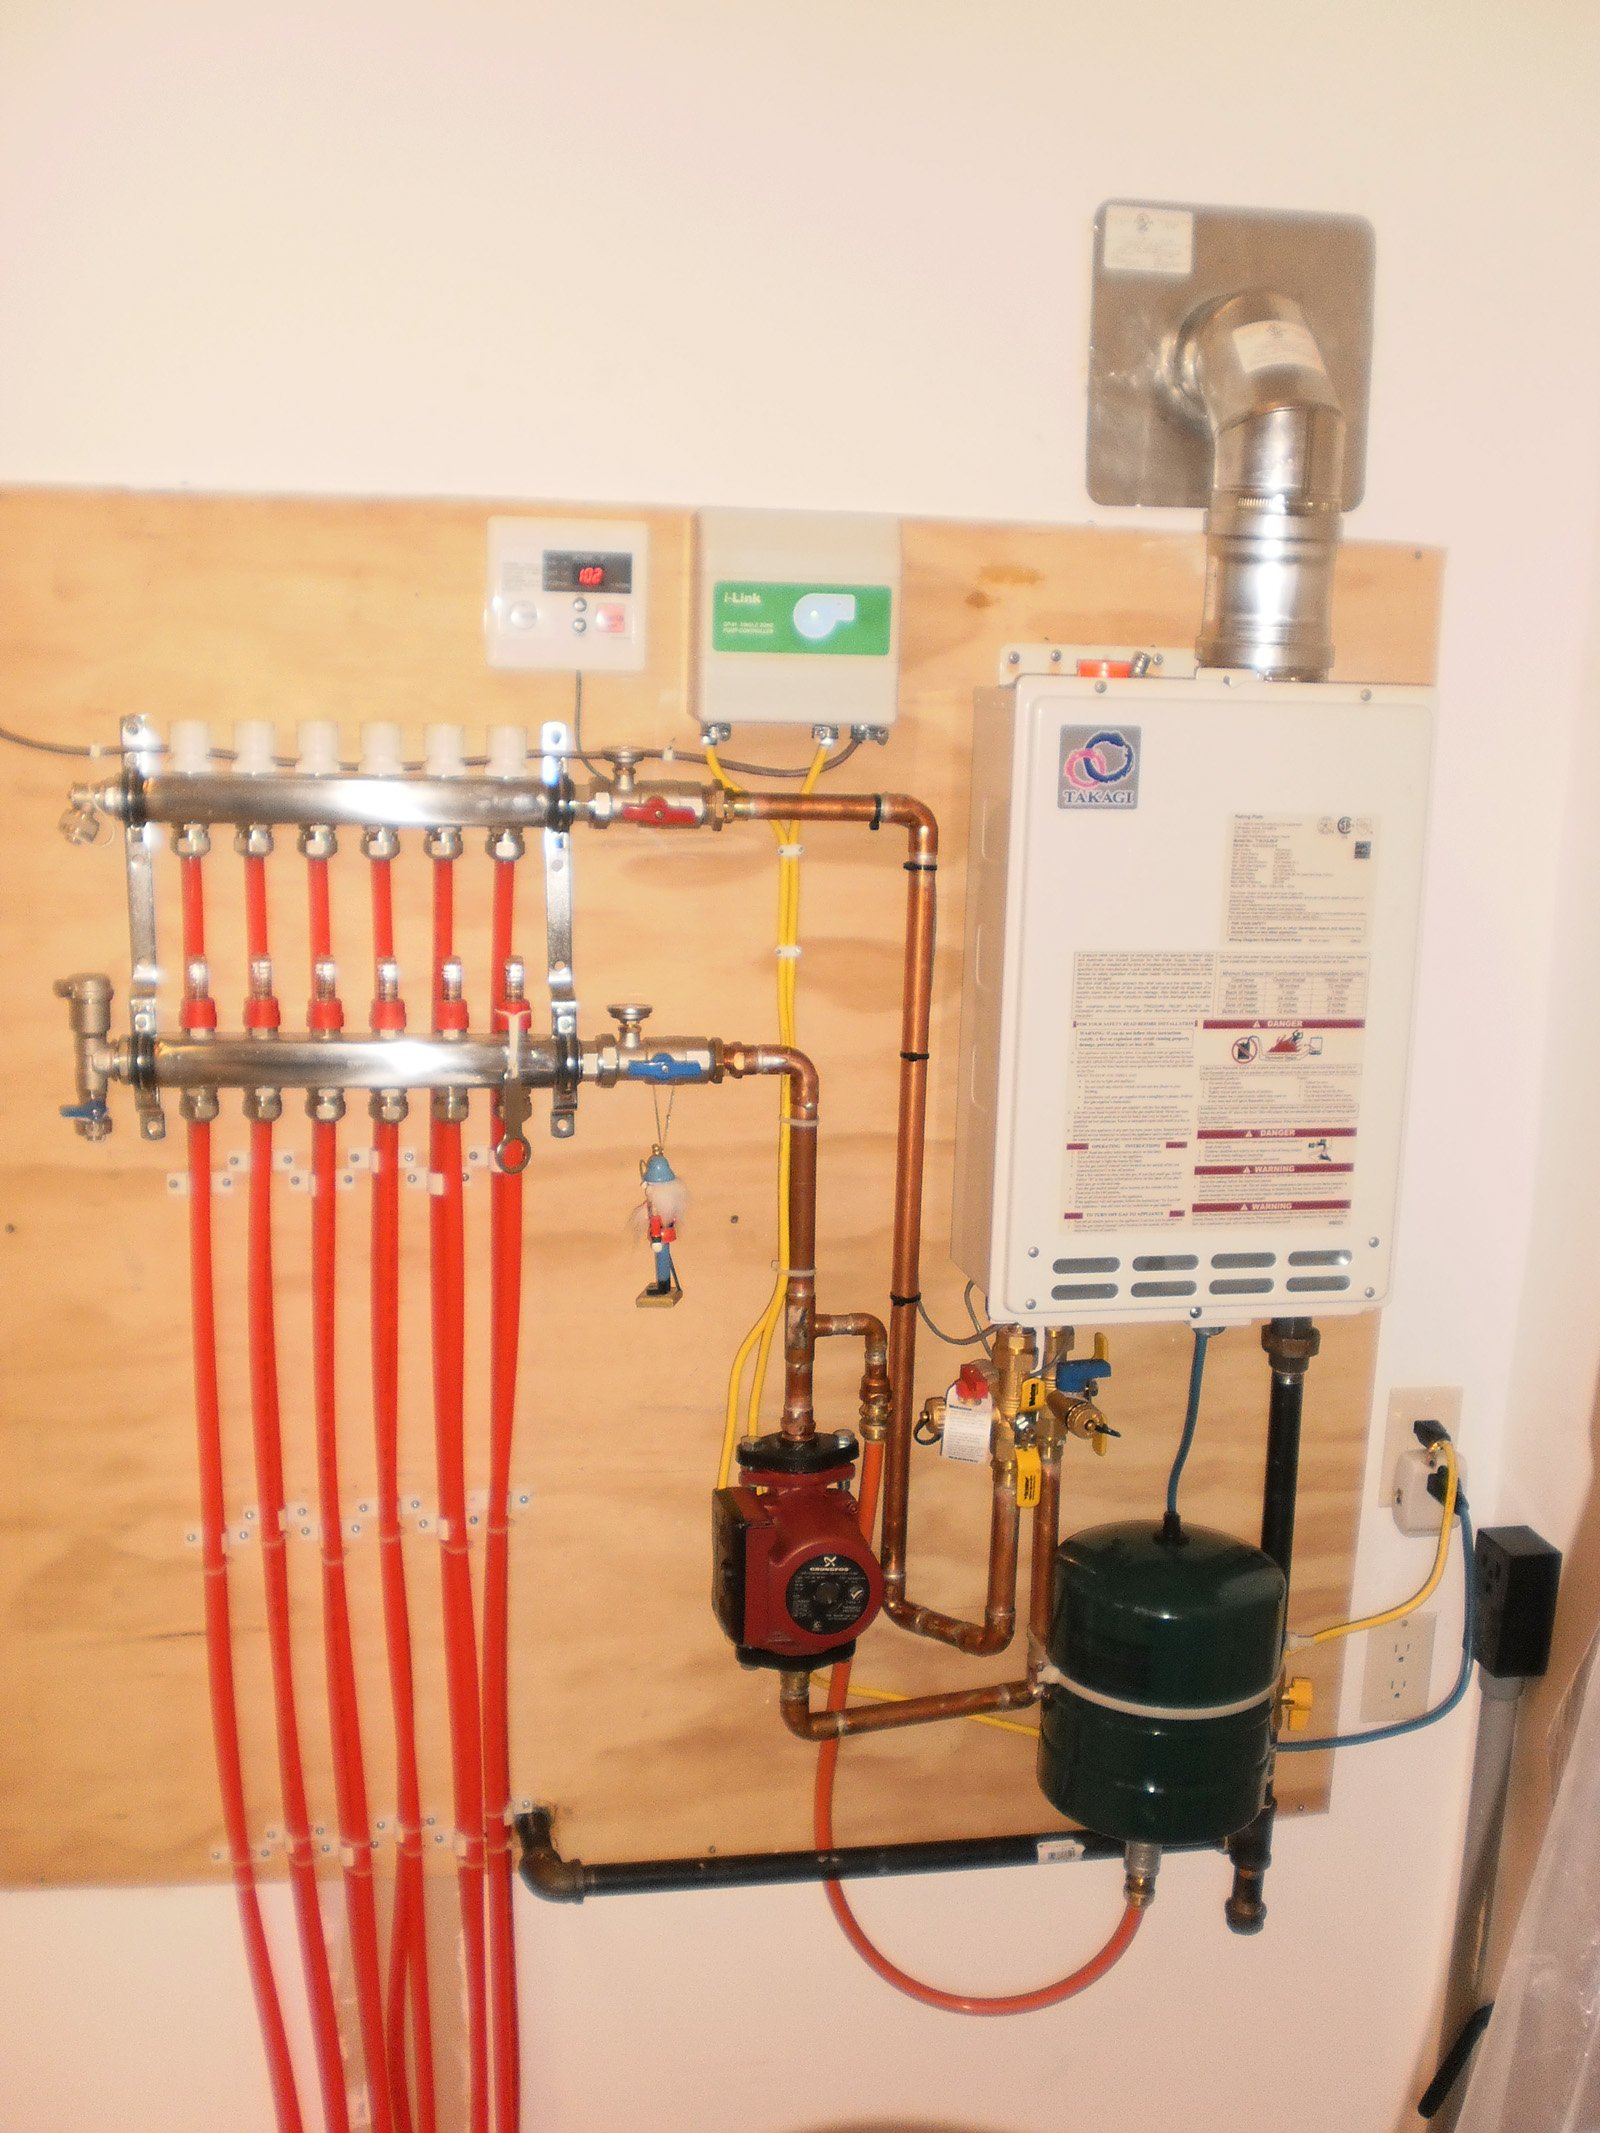 Mixing Valve Radiant Floor Heating Gurus Floor